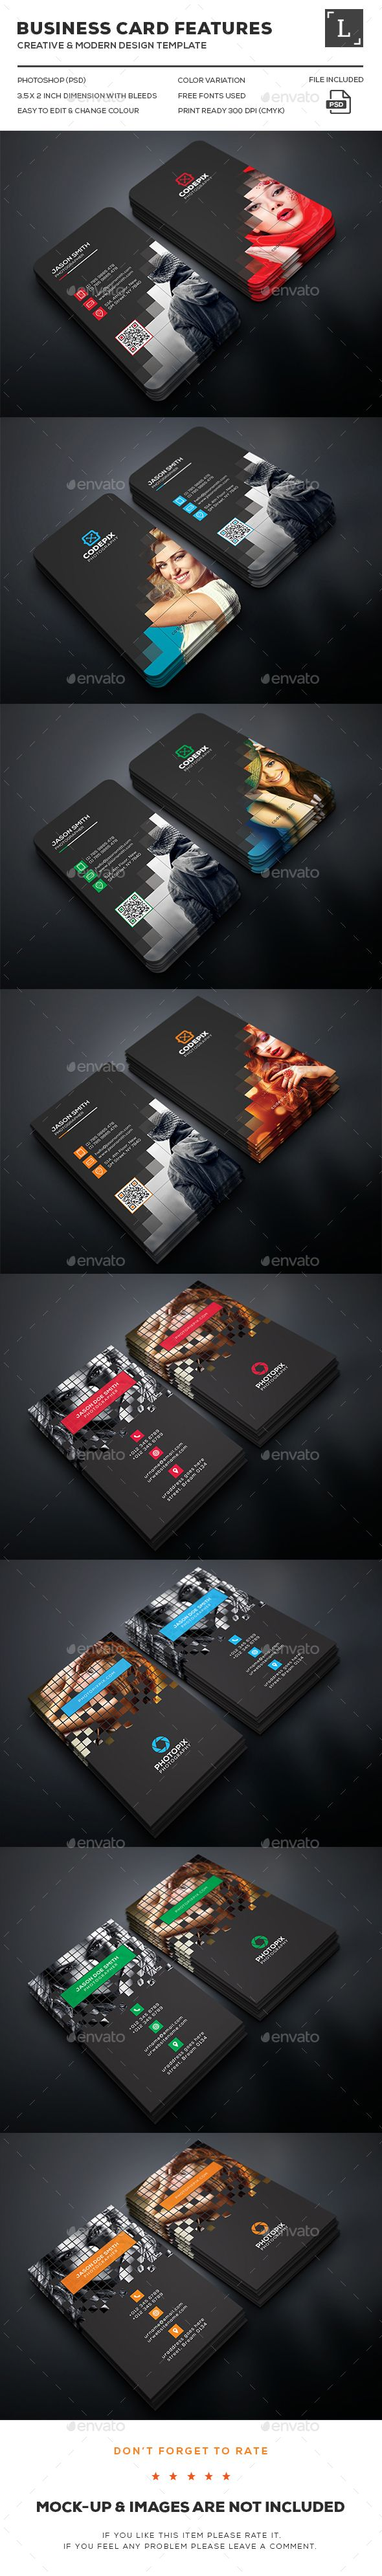 Photography Business Card Bundle — Photoshop PSD #graphic #pixels • Available here → https://graphicriver.net/item/photography-business-card-bundle/16295695?ref=pxcr